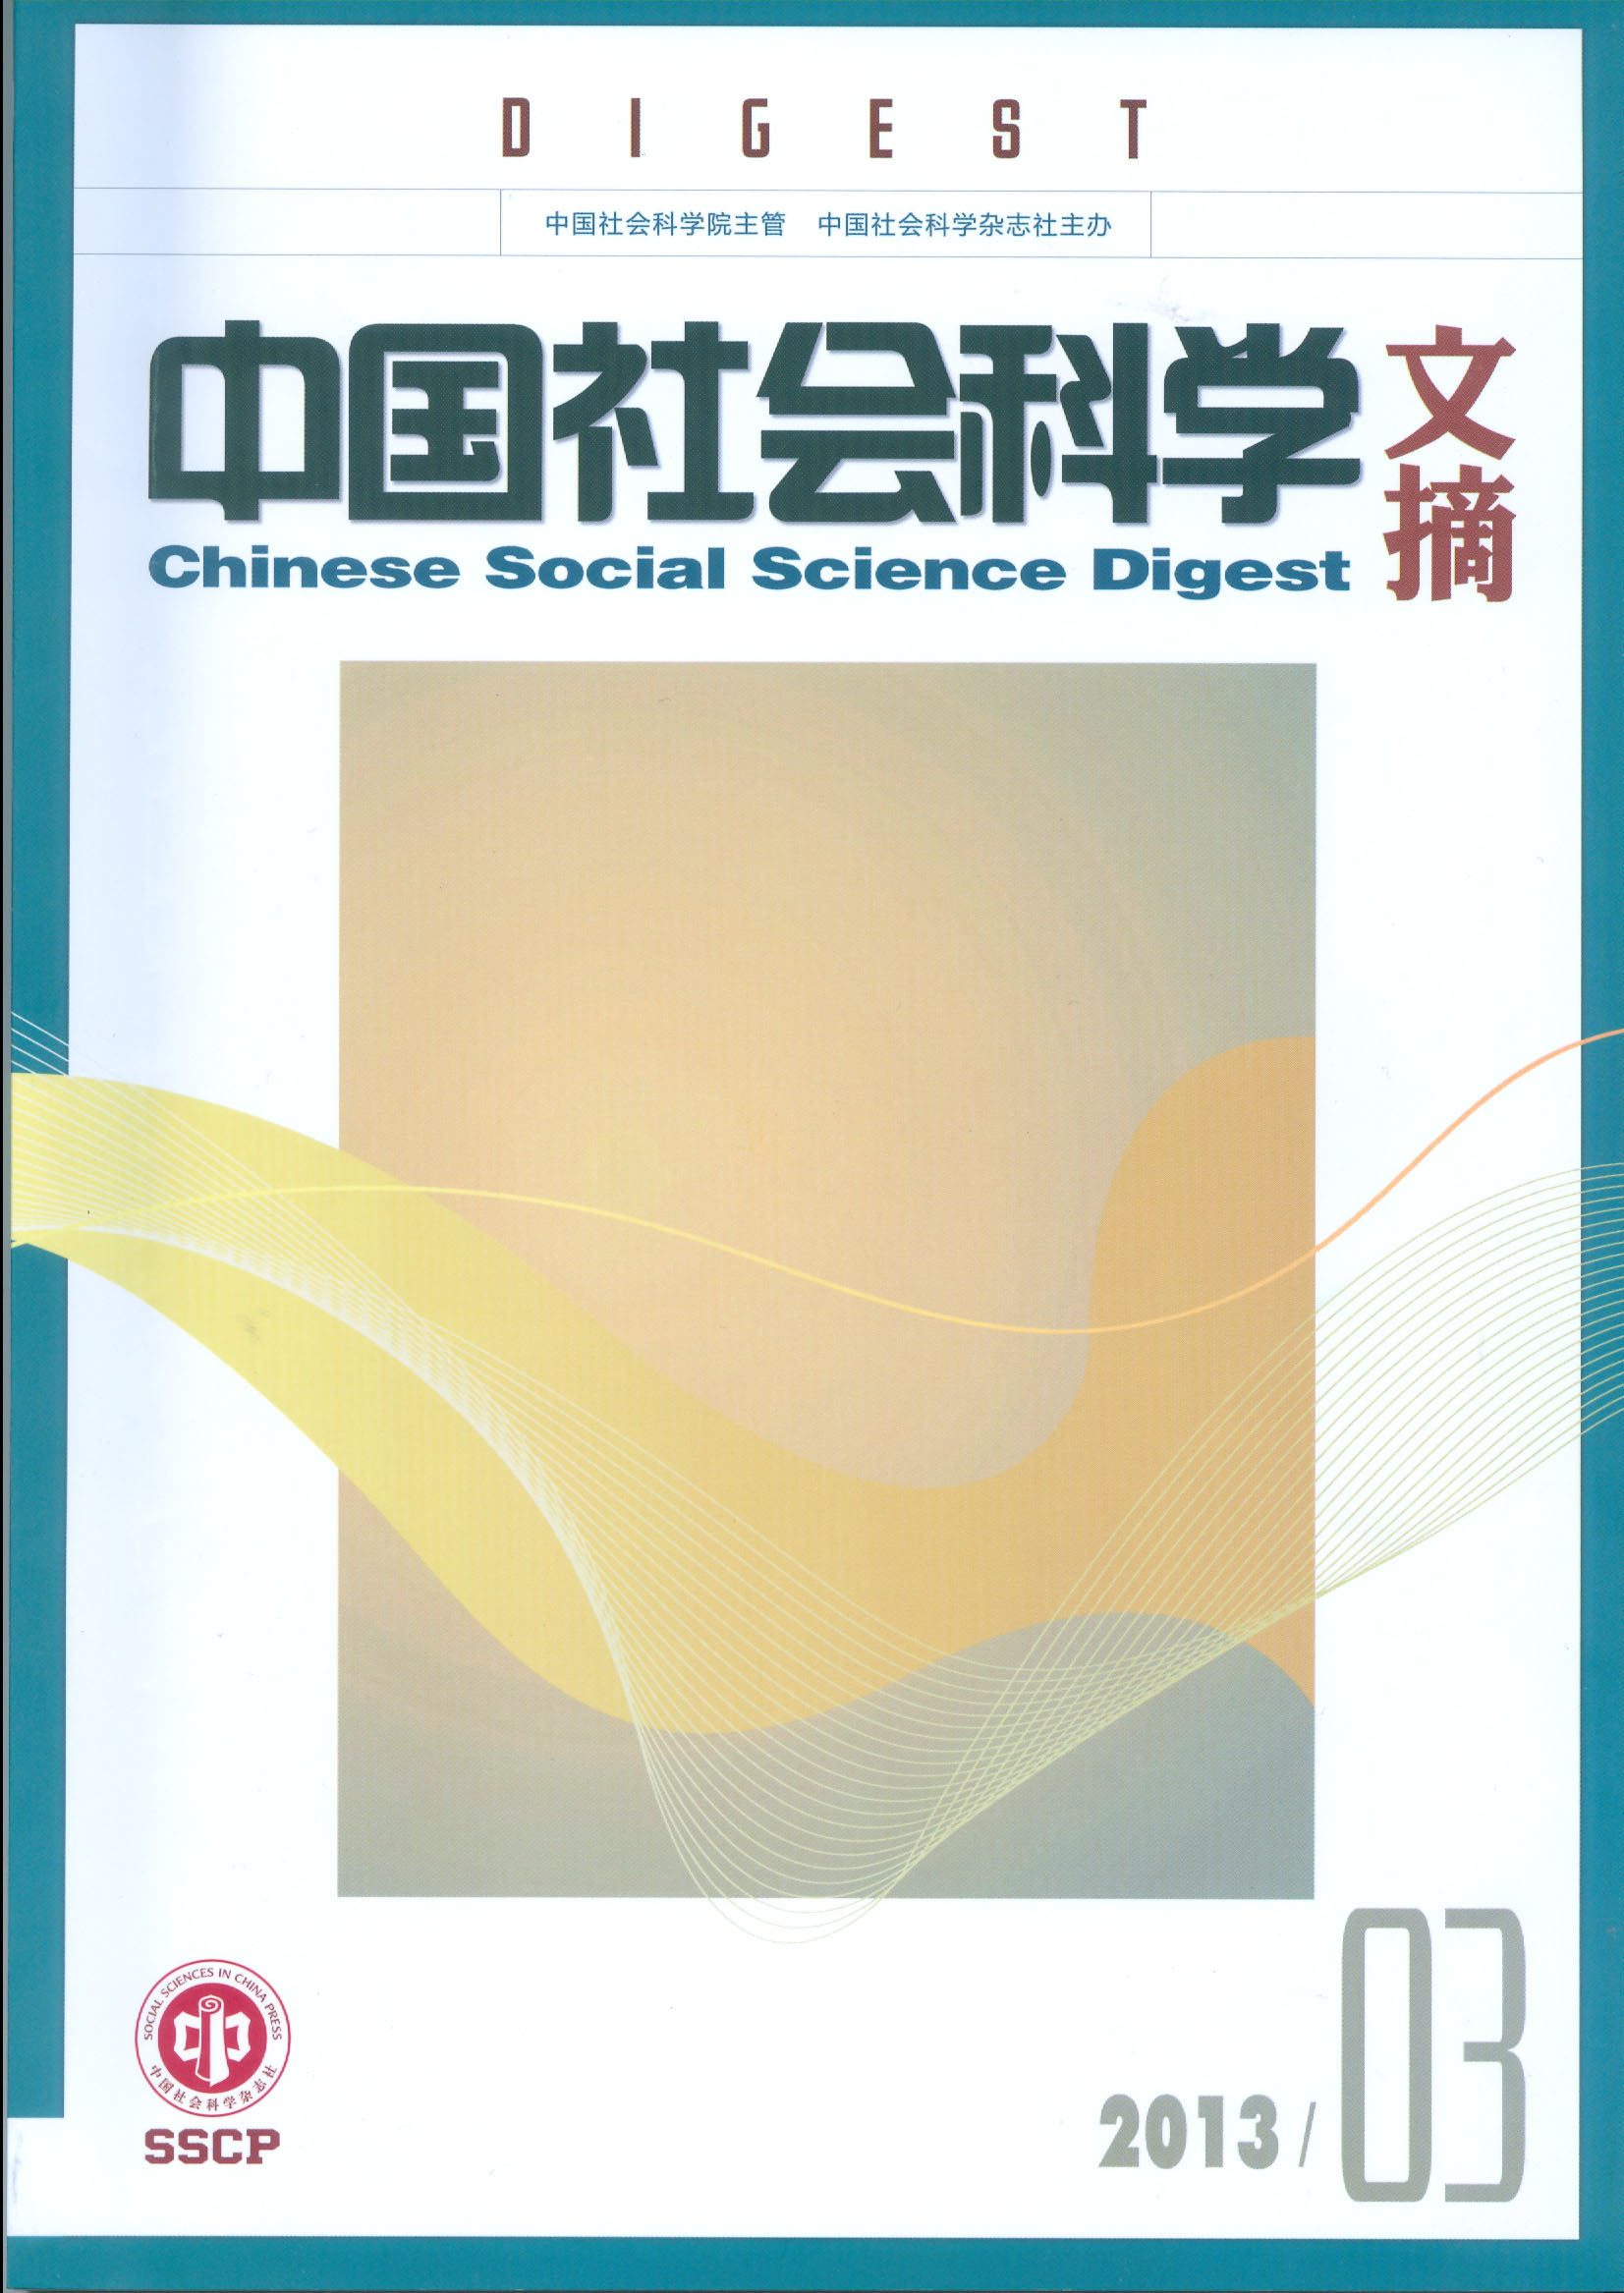 Chinese Social Science Digest